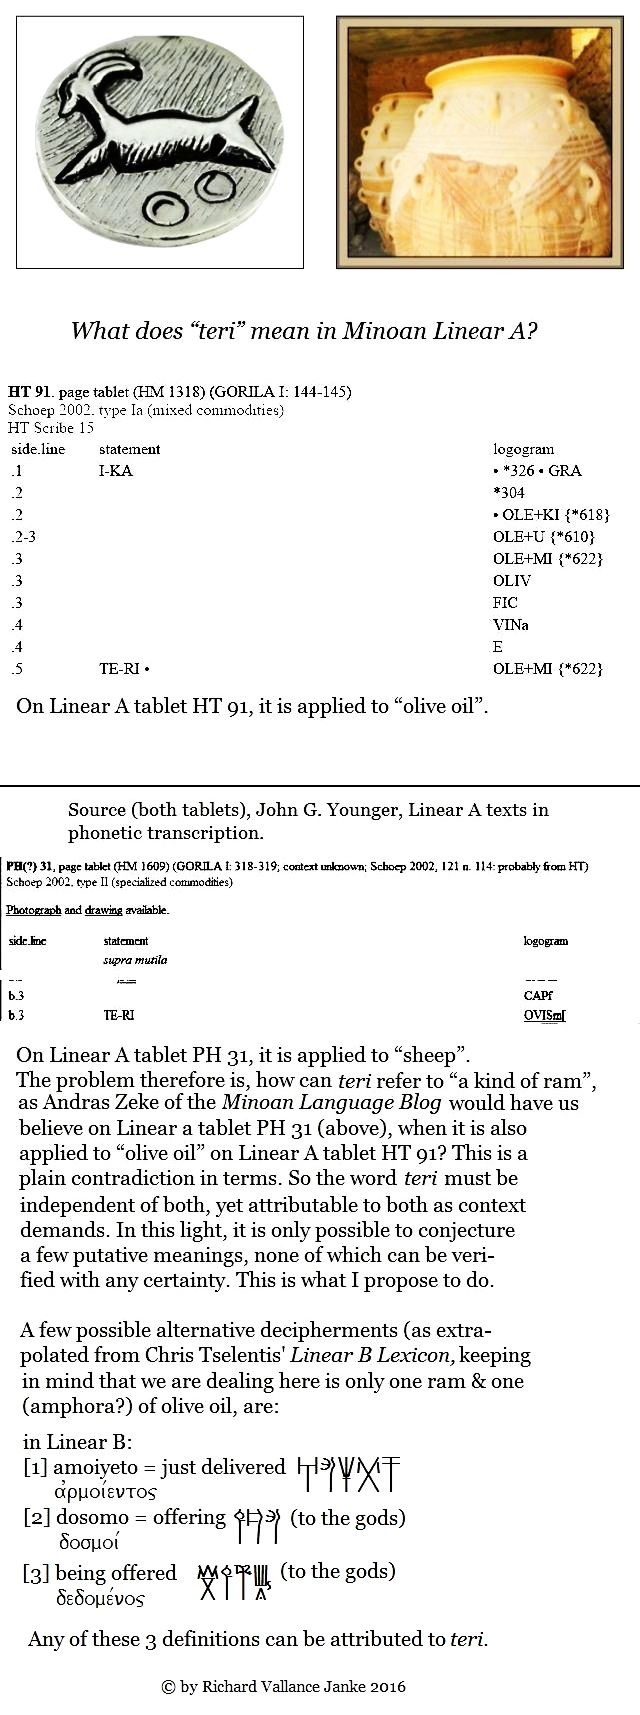 Minoan Linear  A TERI sheep and olive oil